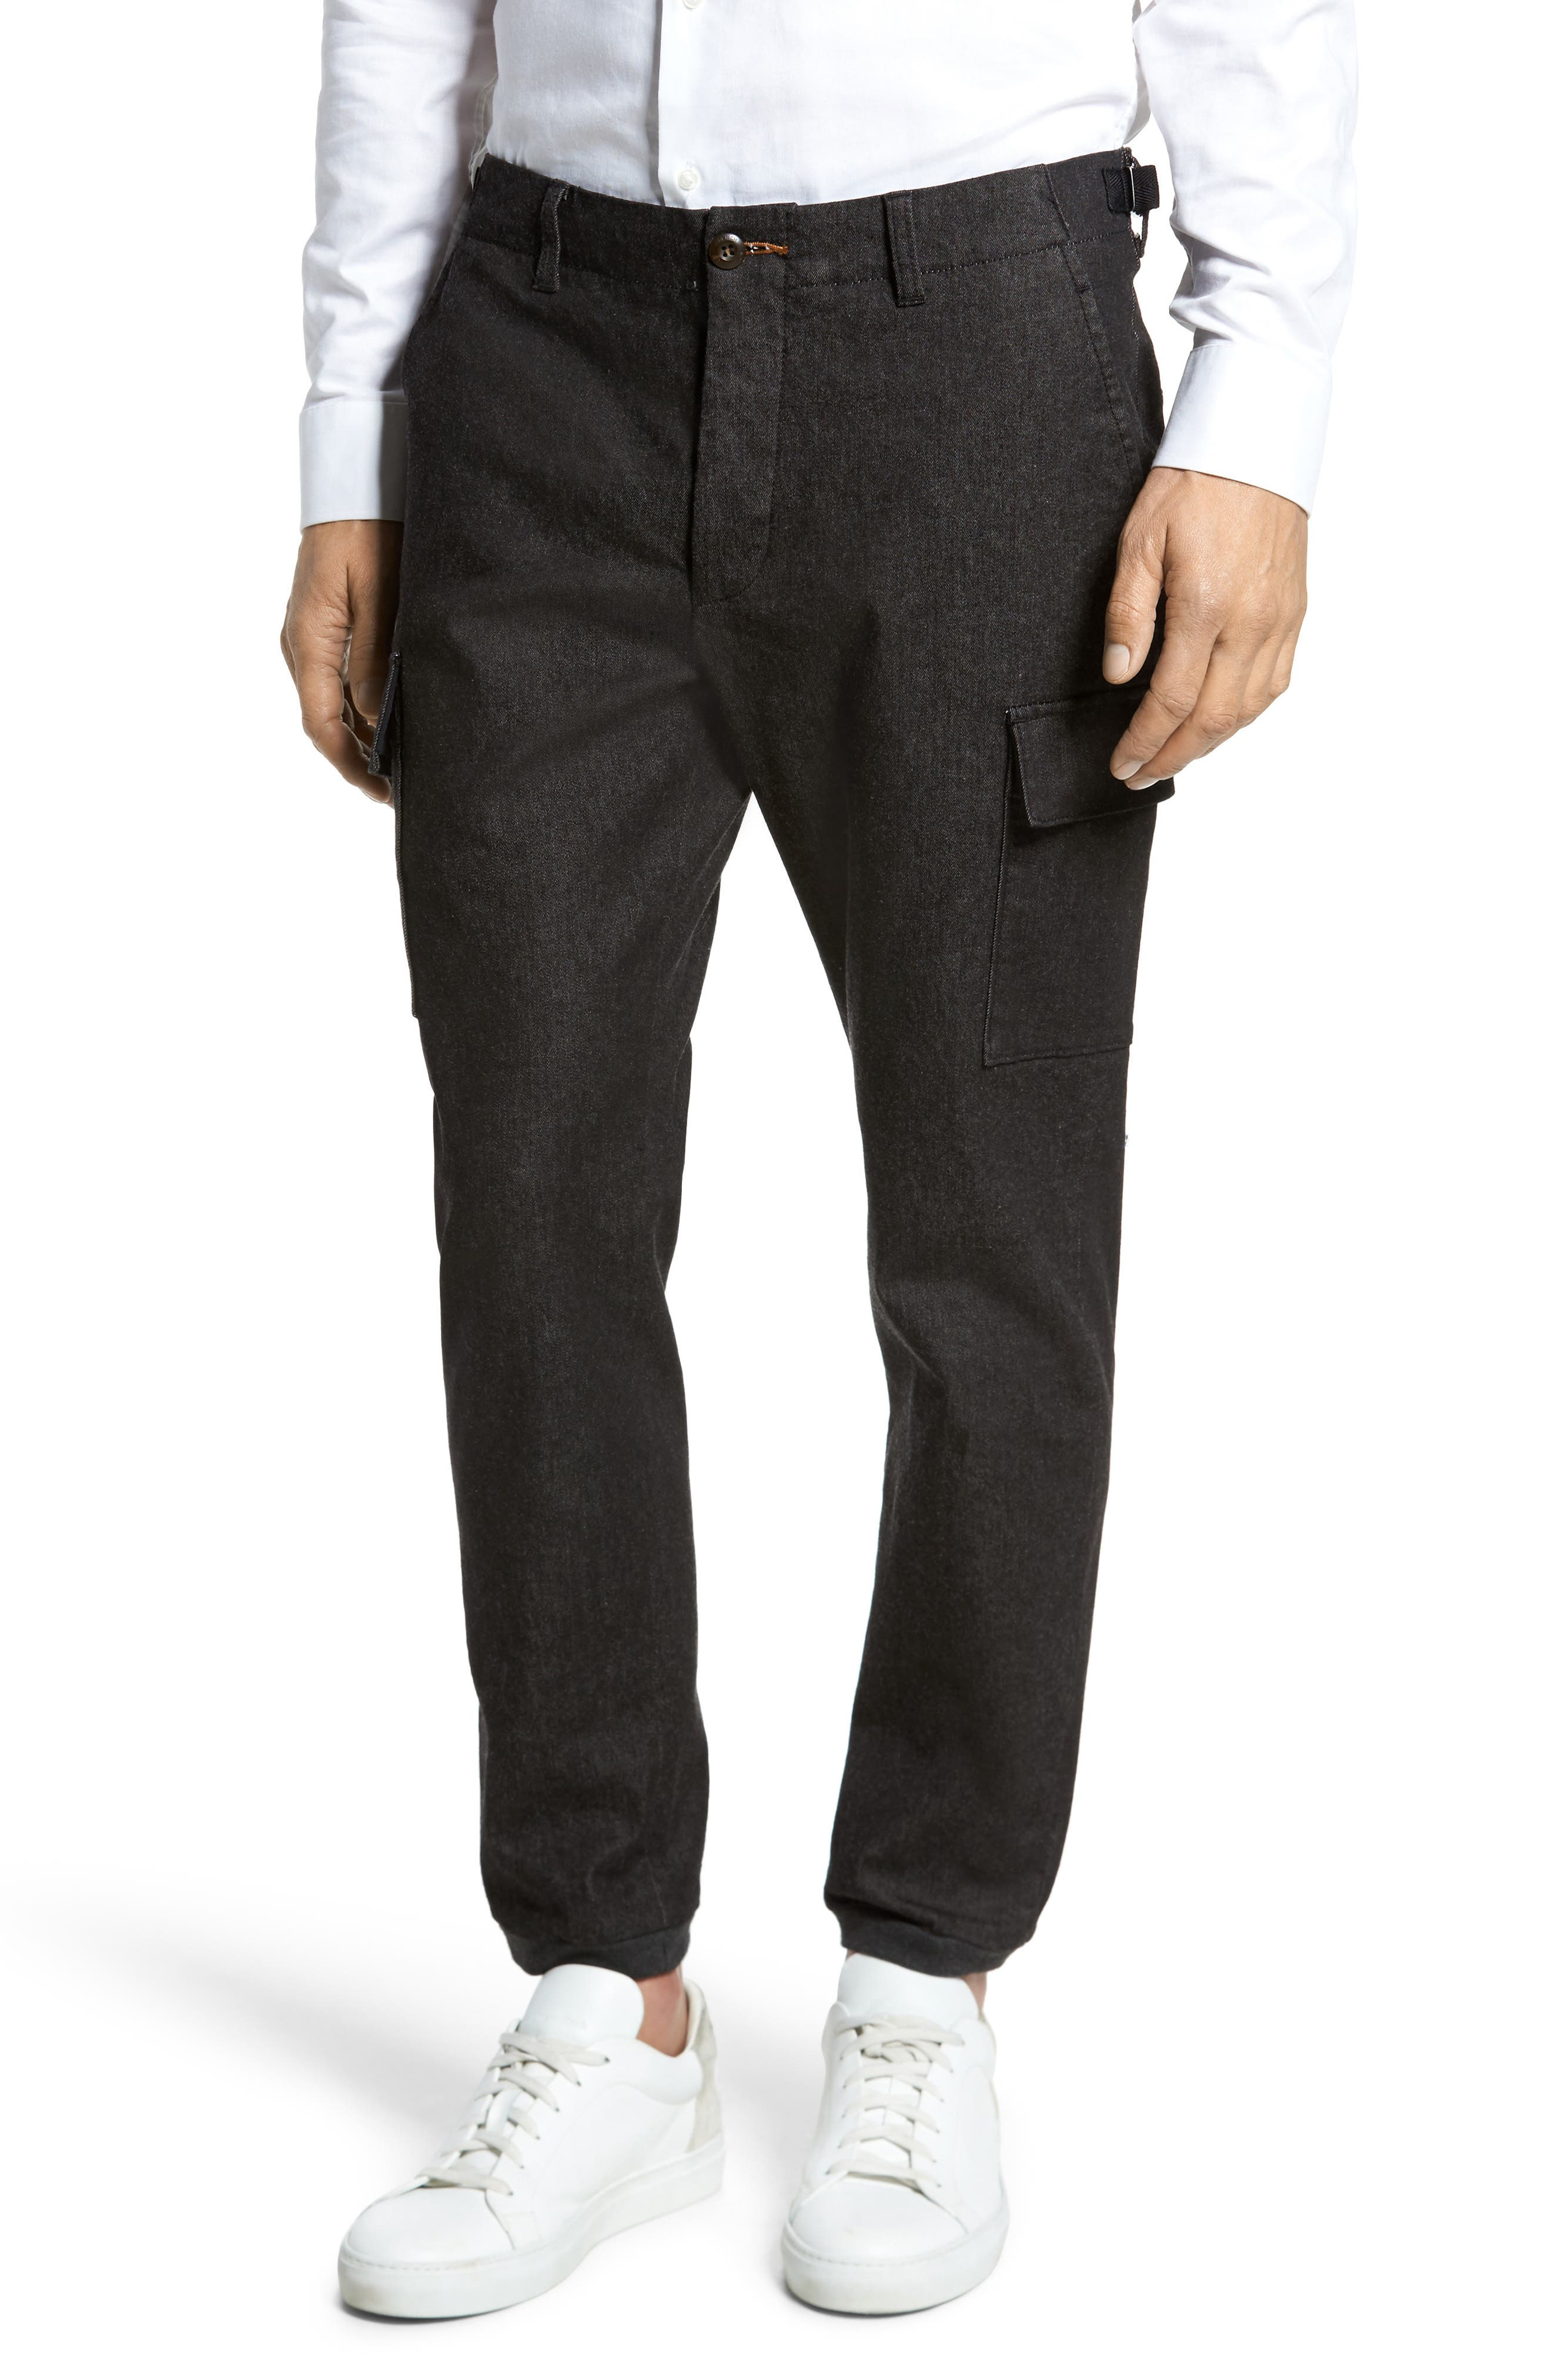 Brushed Stretch Twill Pants,                         Main,                         color, Charcoal Mel